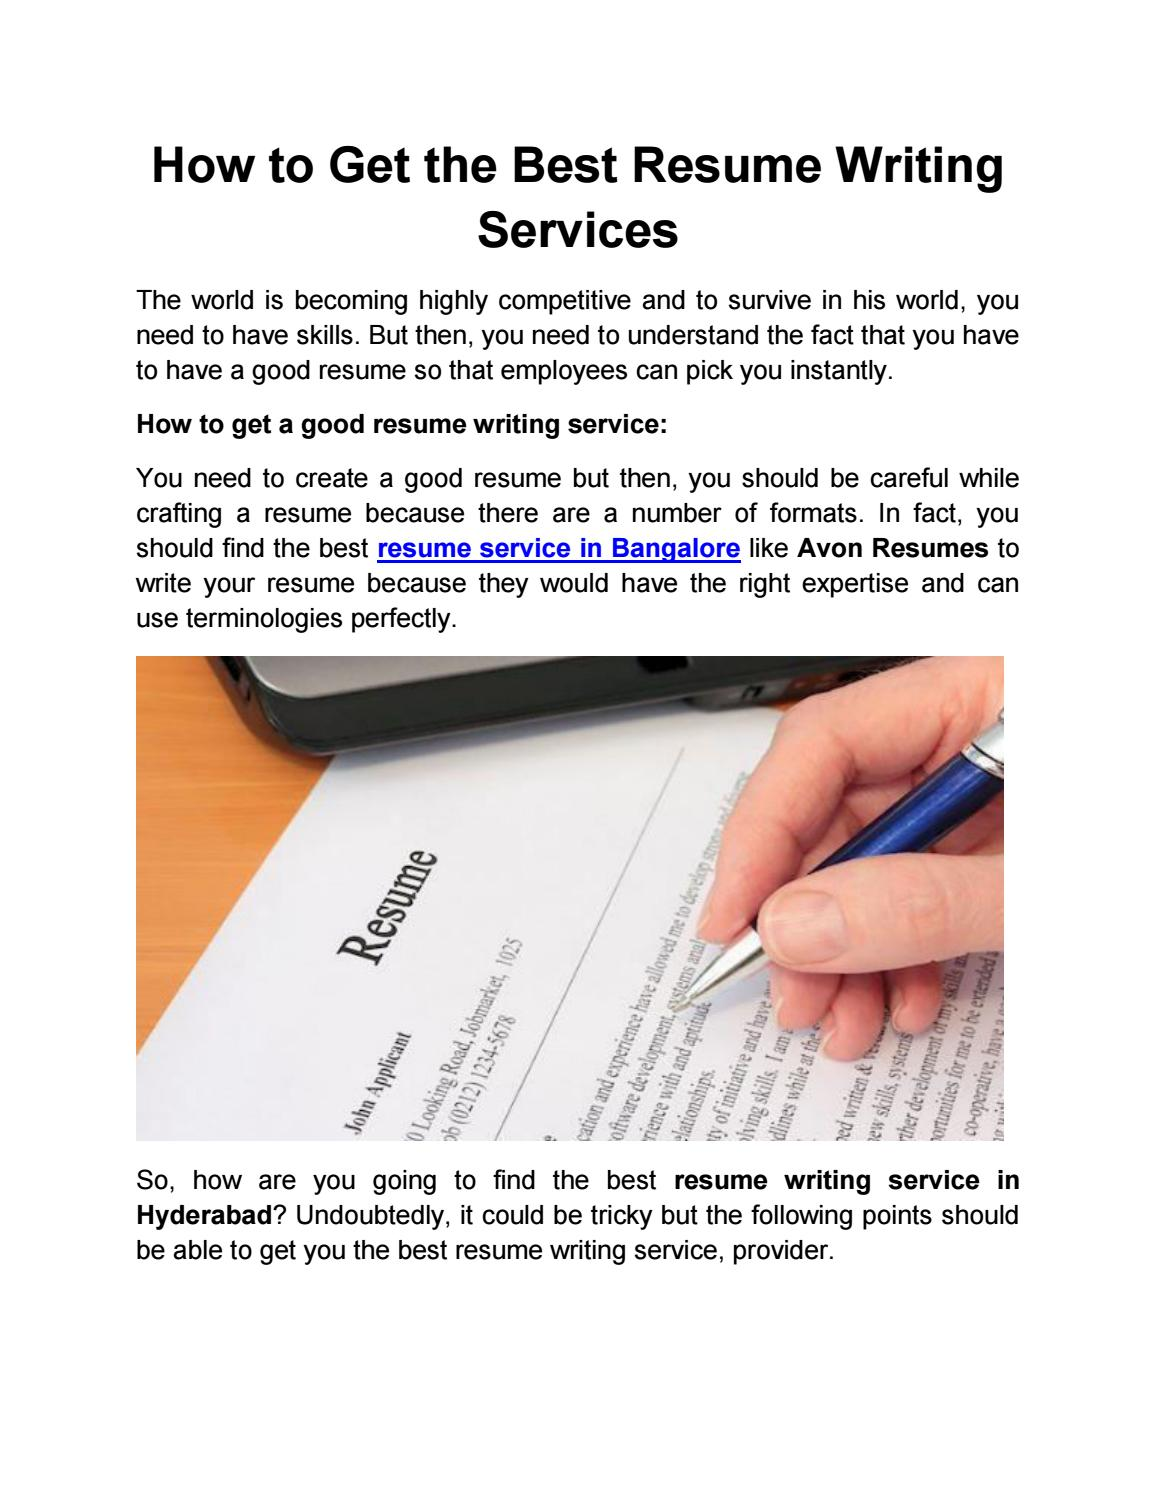 How To Get The Best Resume Writing Services By Arun Tiwari Issuu